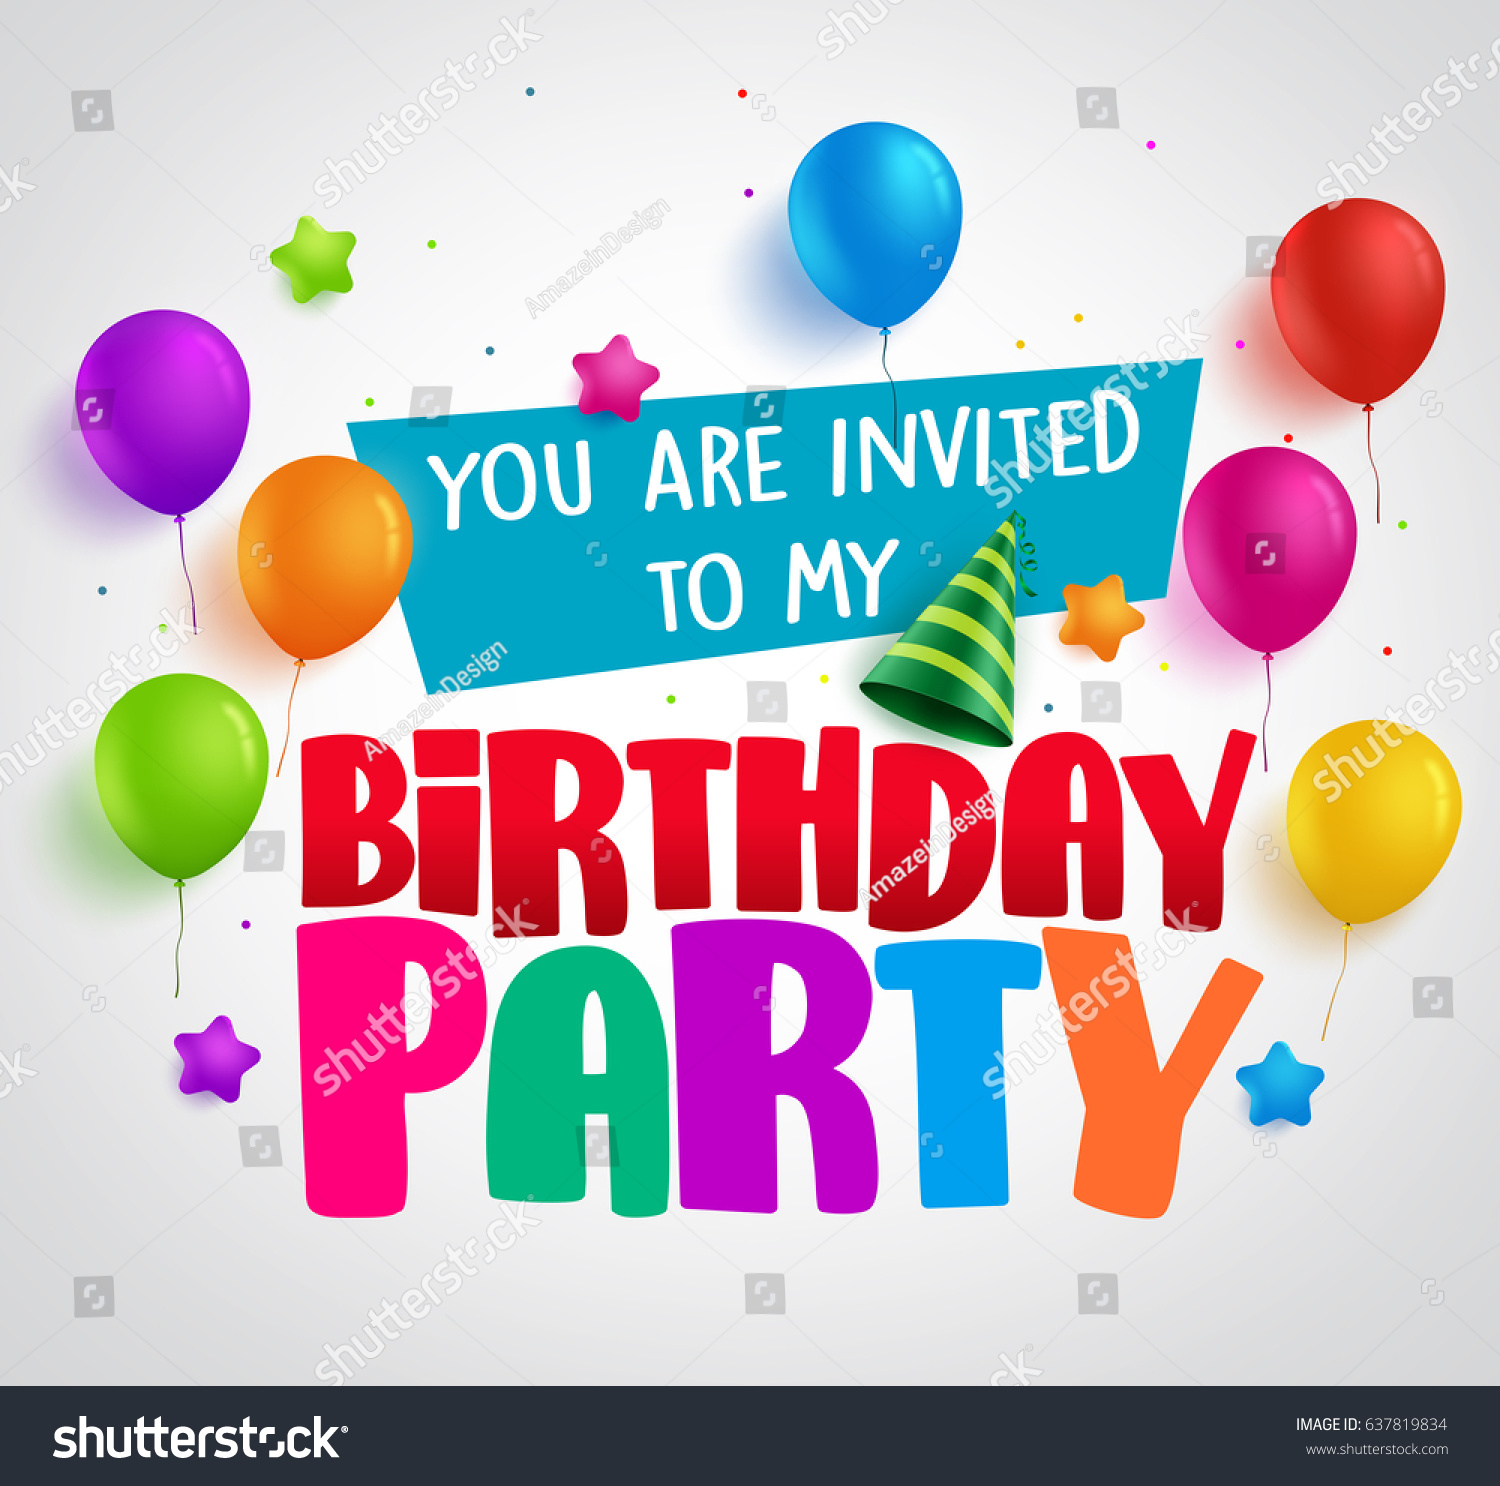 Birthday Party Invitation Background Vector Design Vector – Party Invitation Background